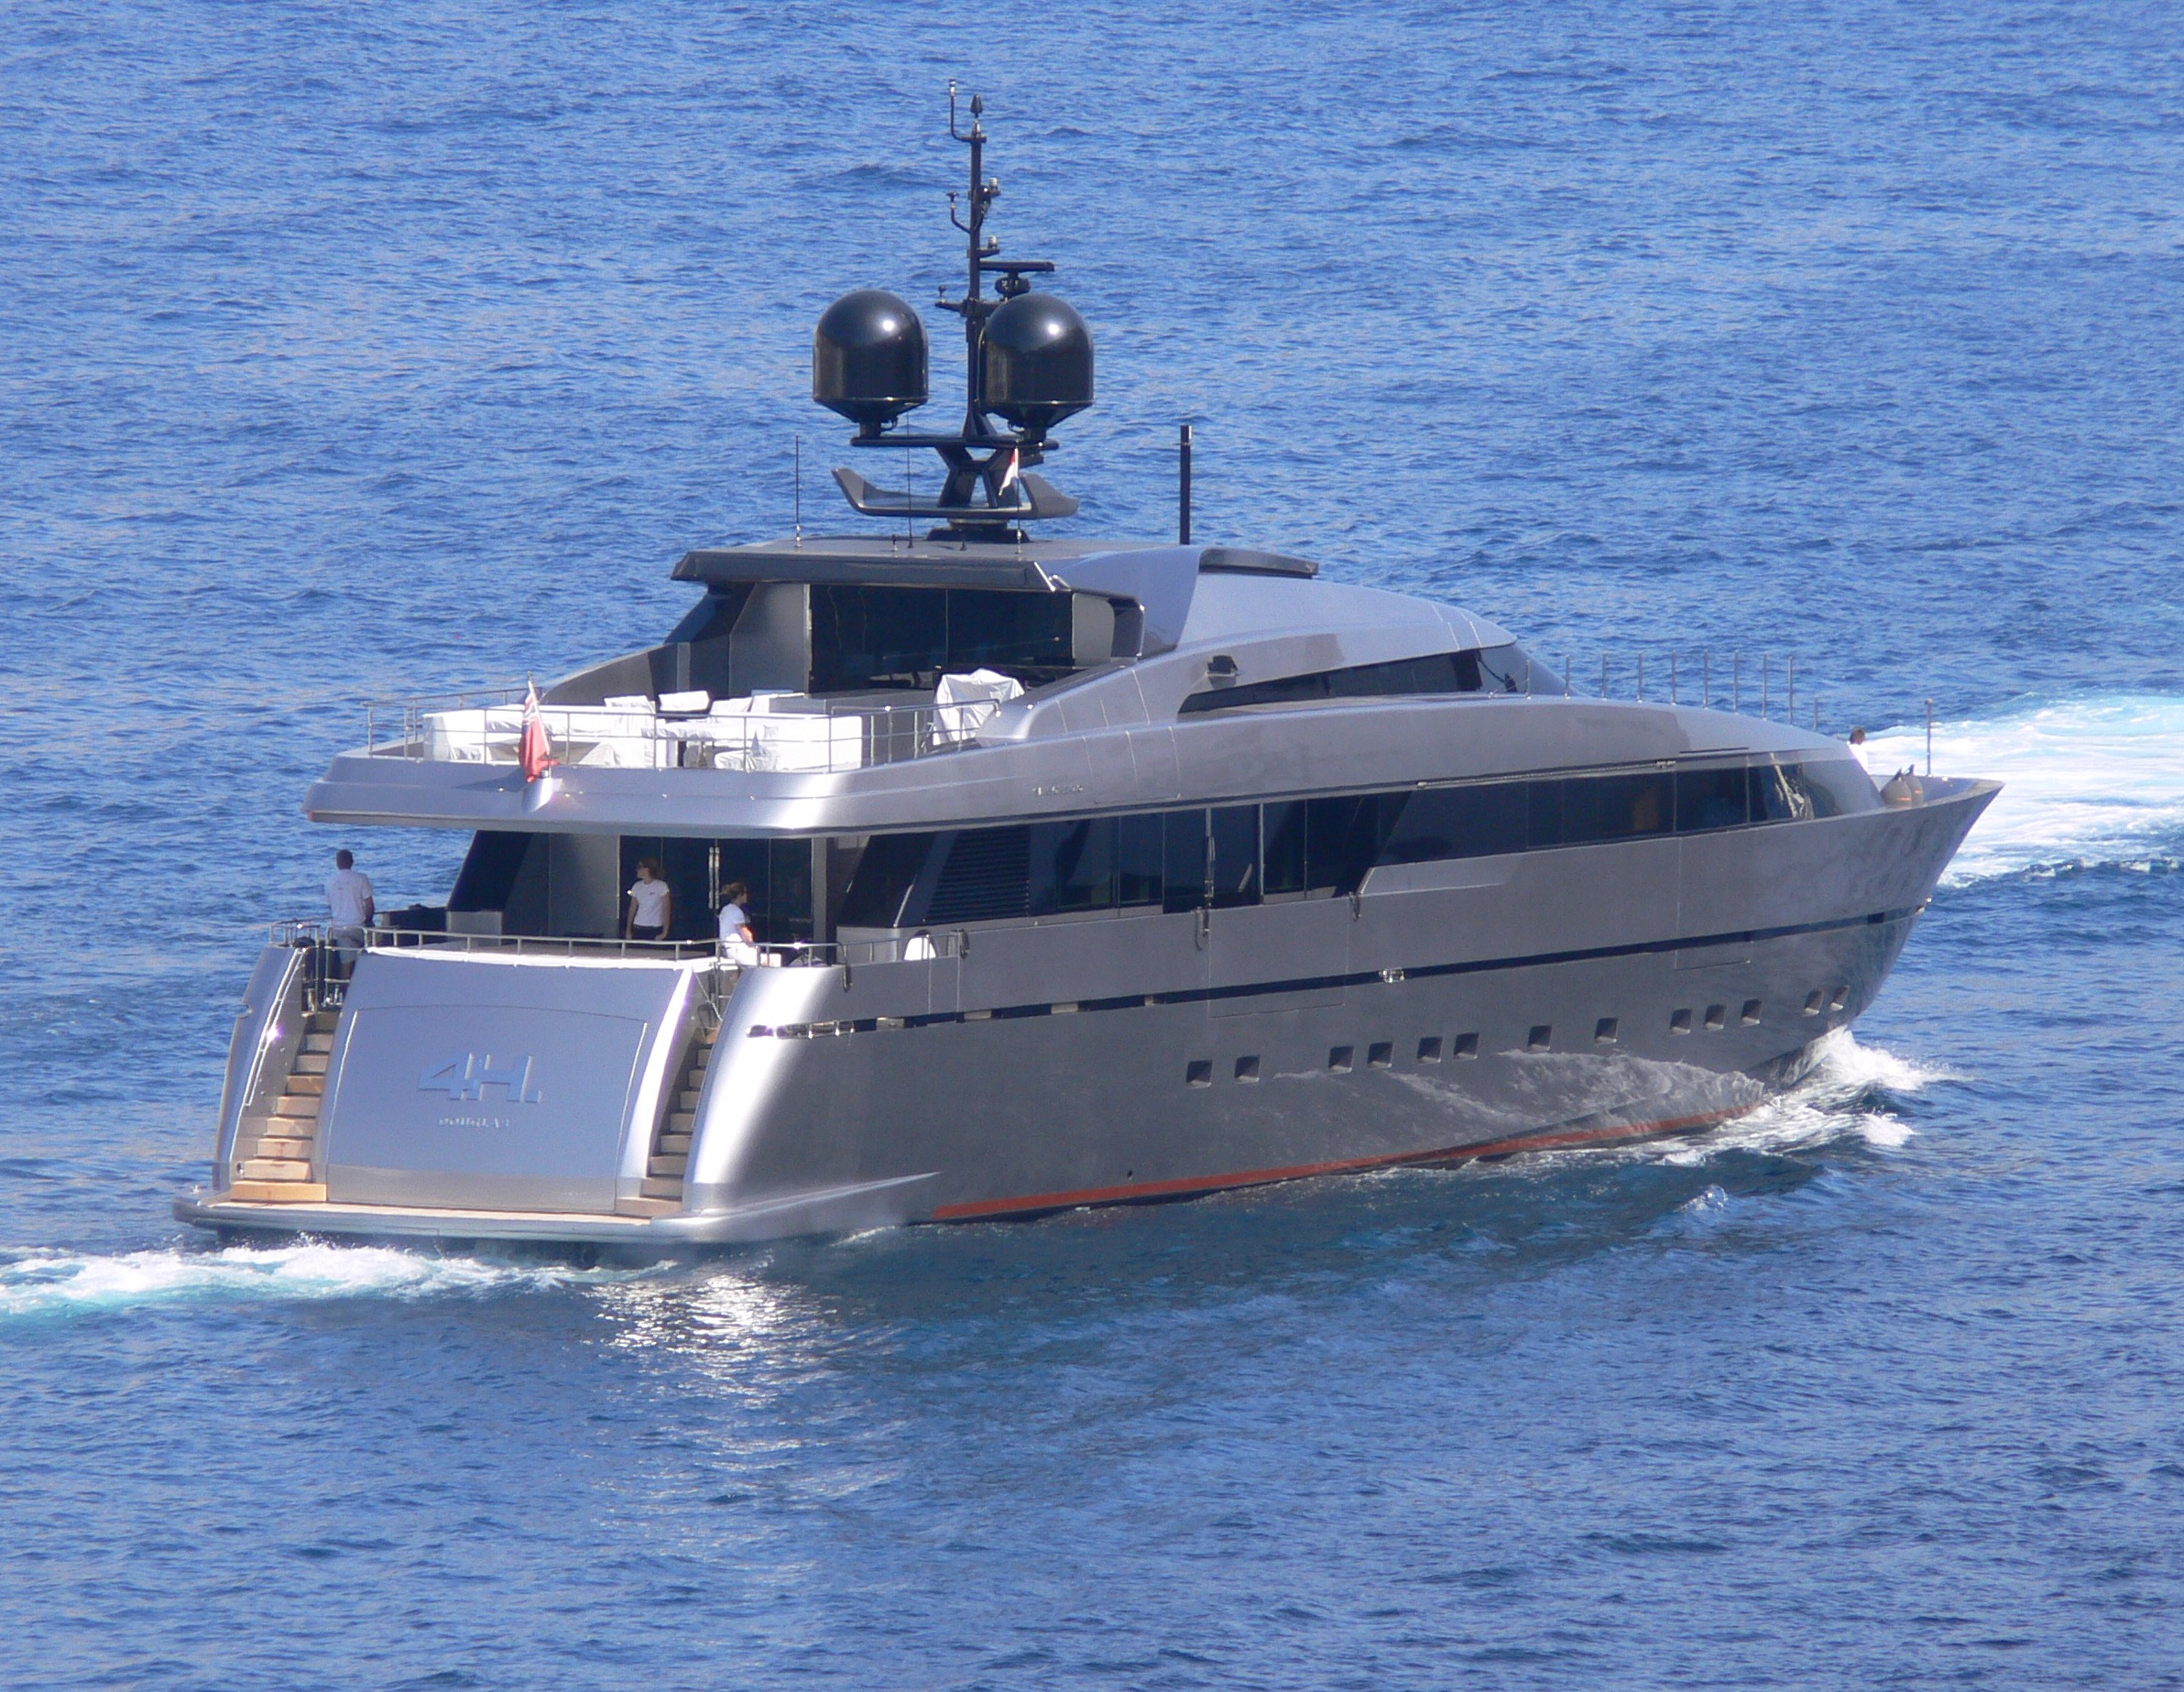 Motor yacht 4 h superyachts news luxury yachts charter for Luxury motor boats for sale